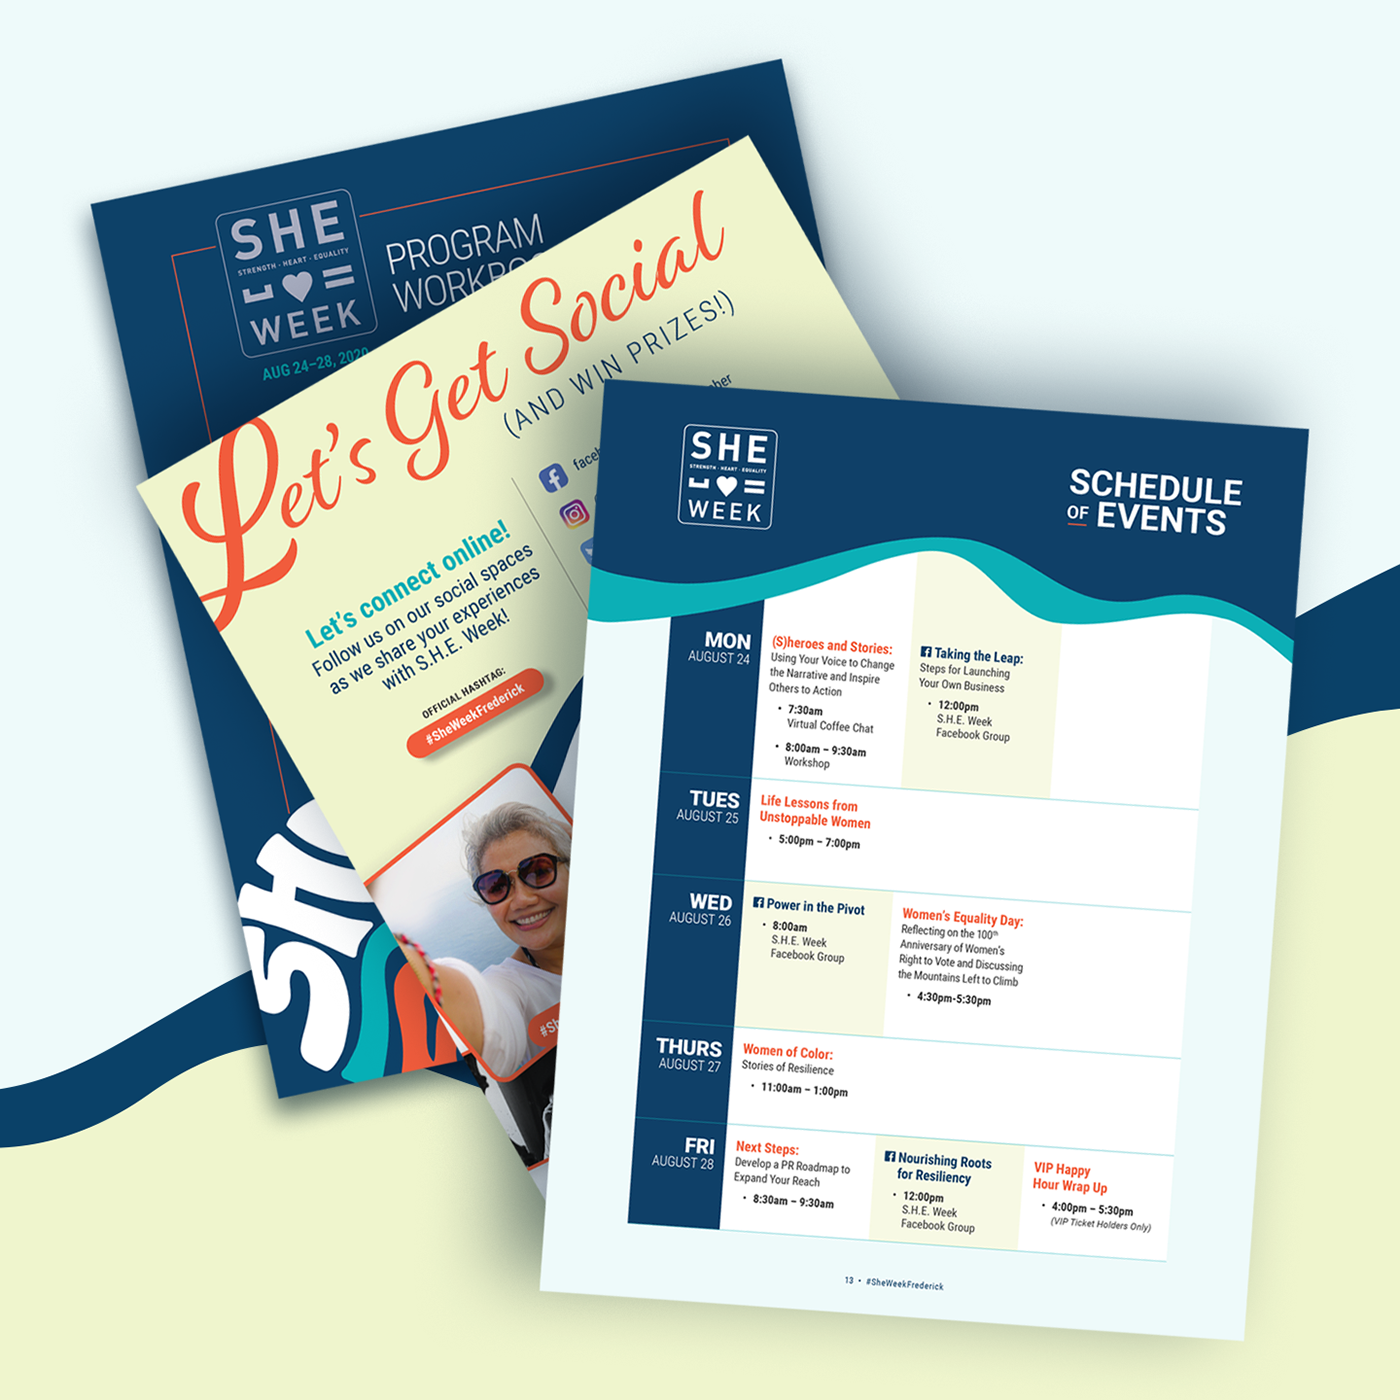 Sample pages of the SHE Week Program workbook